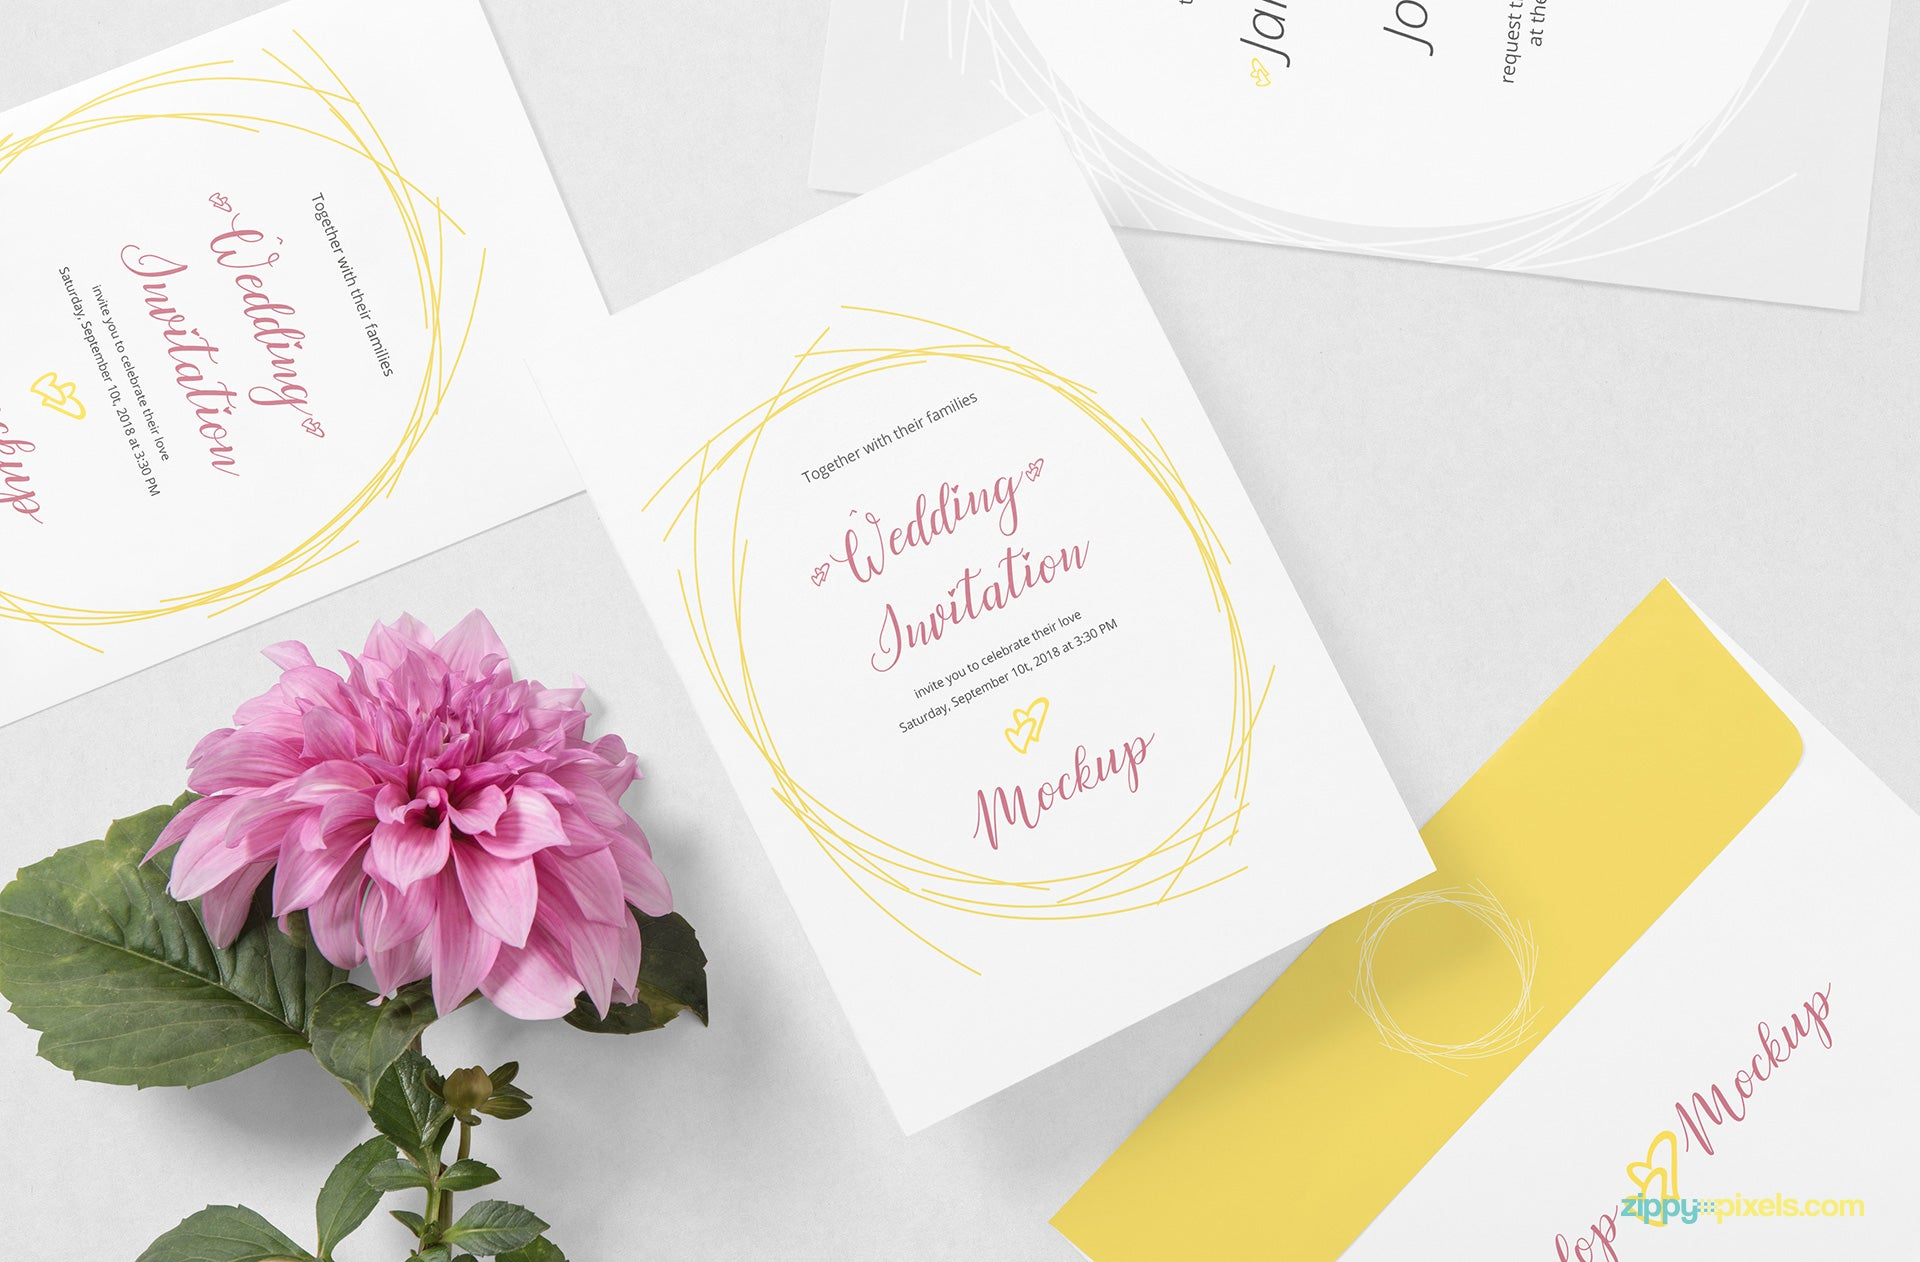 Free Wedding Card Mockup PSD CreativeBooster